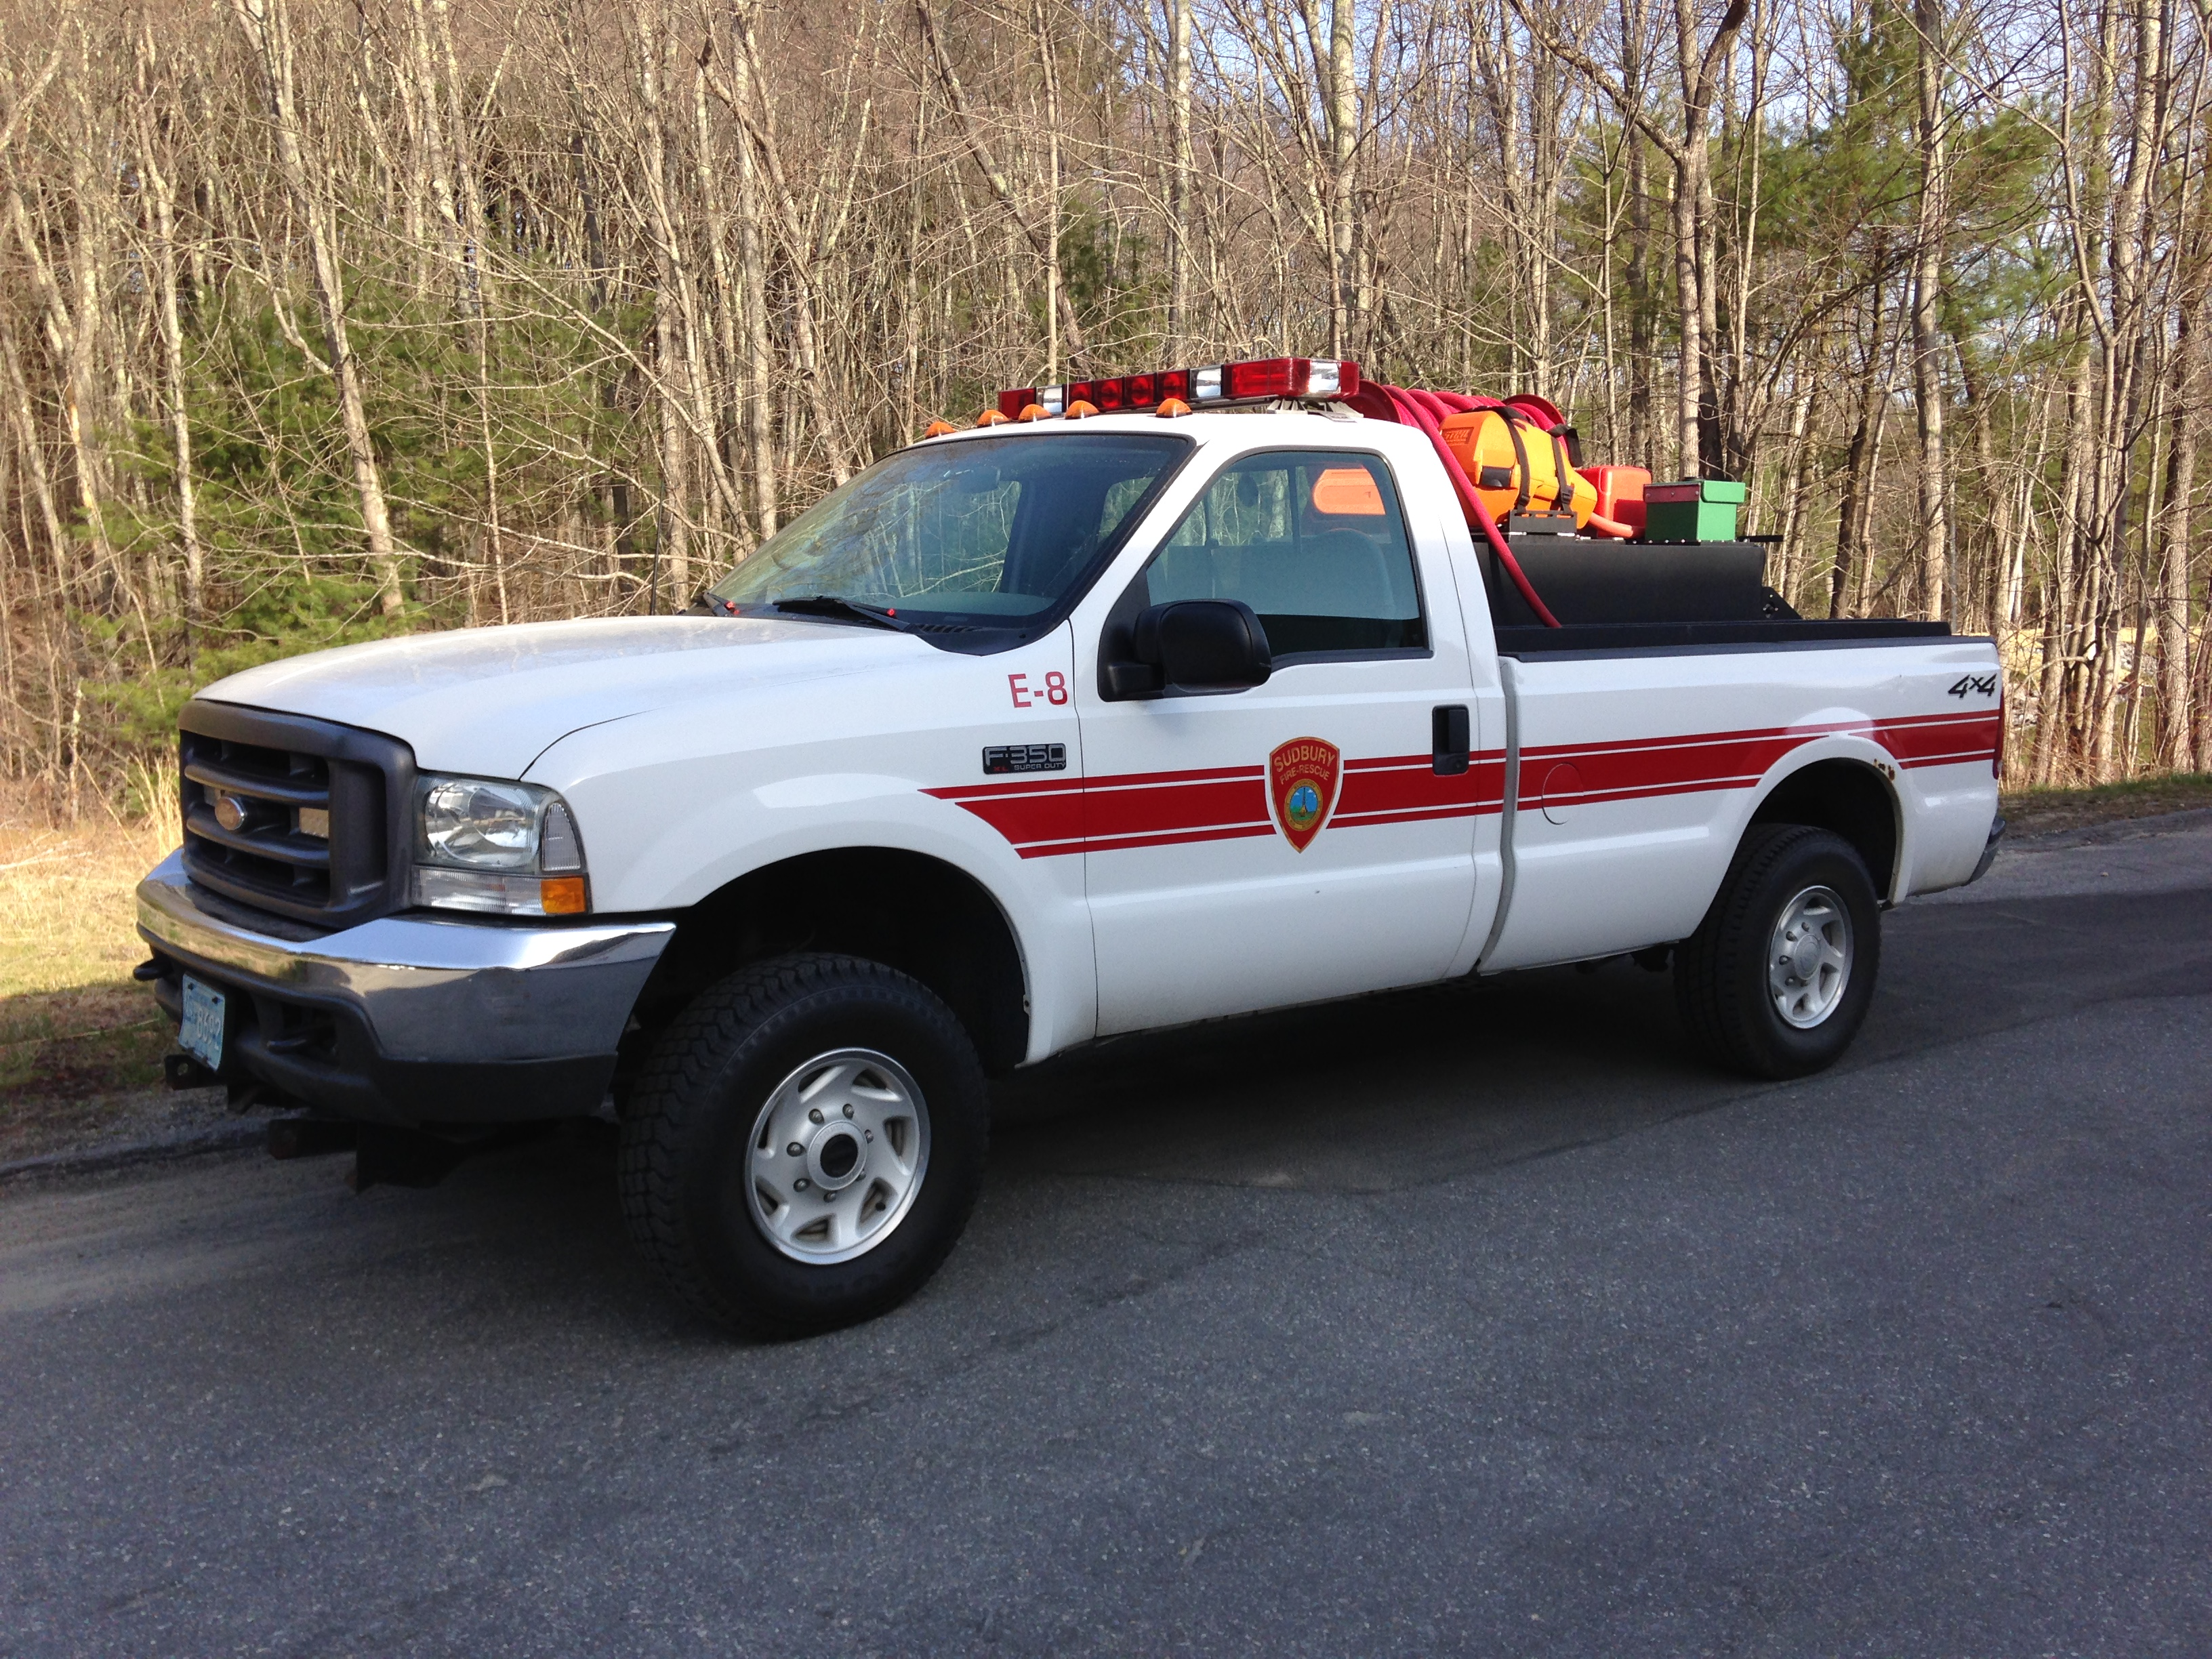 Engine 8 – Brush Truck